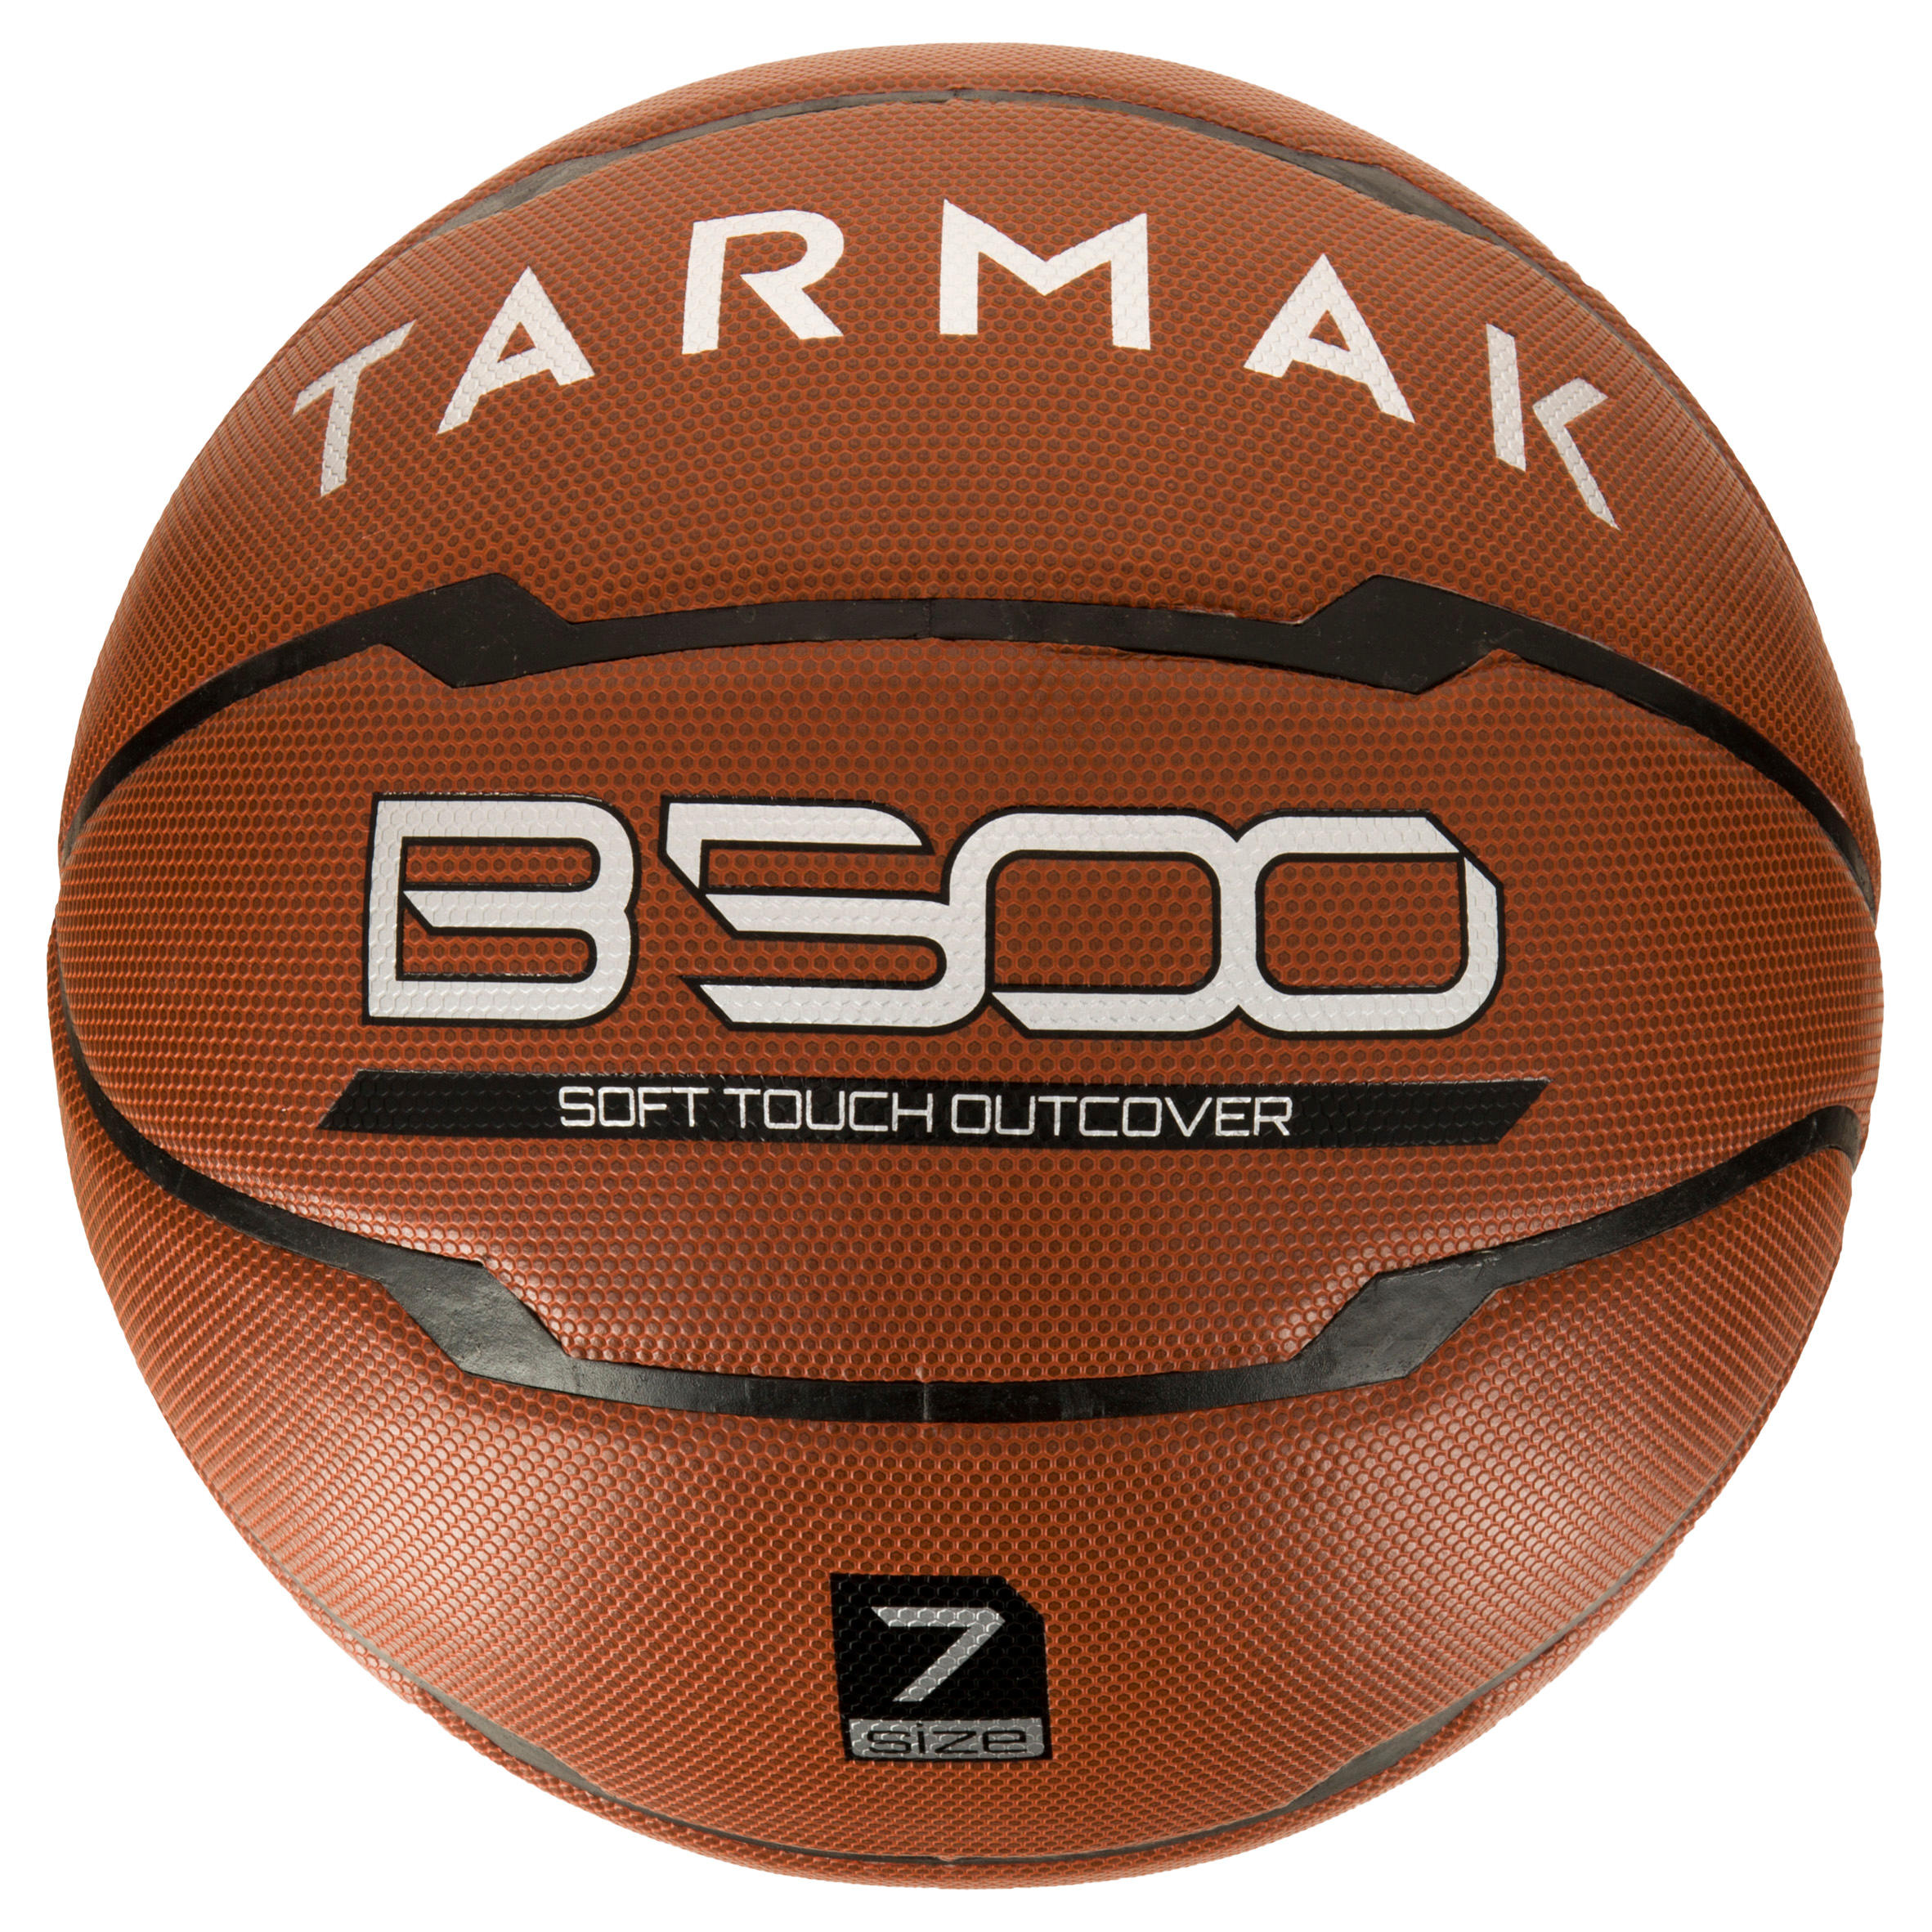 Ballon de basketball adulte B500 taille 7 marron